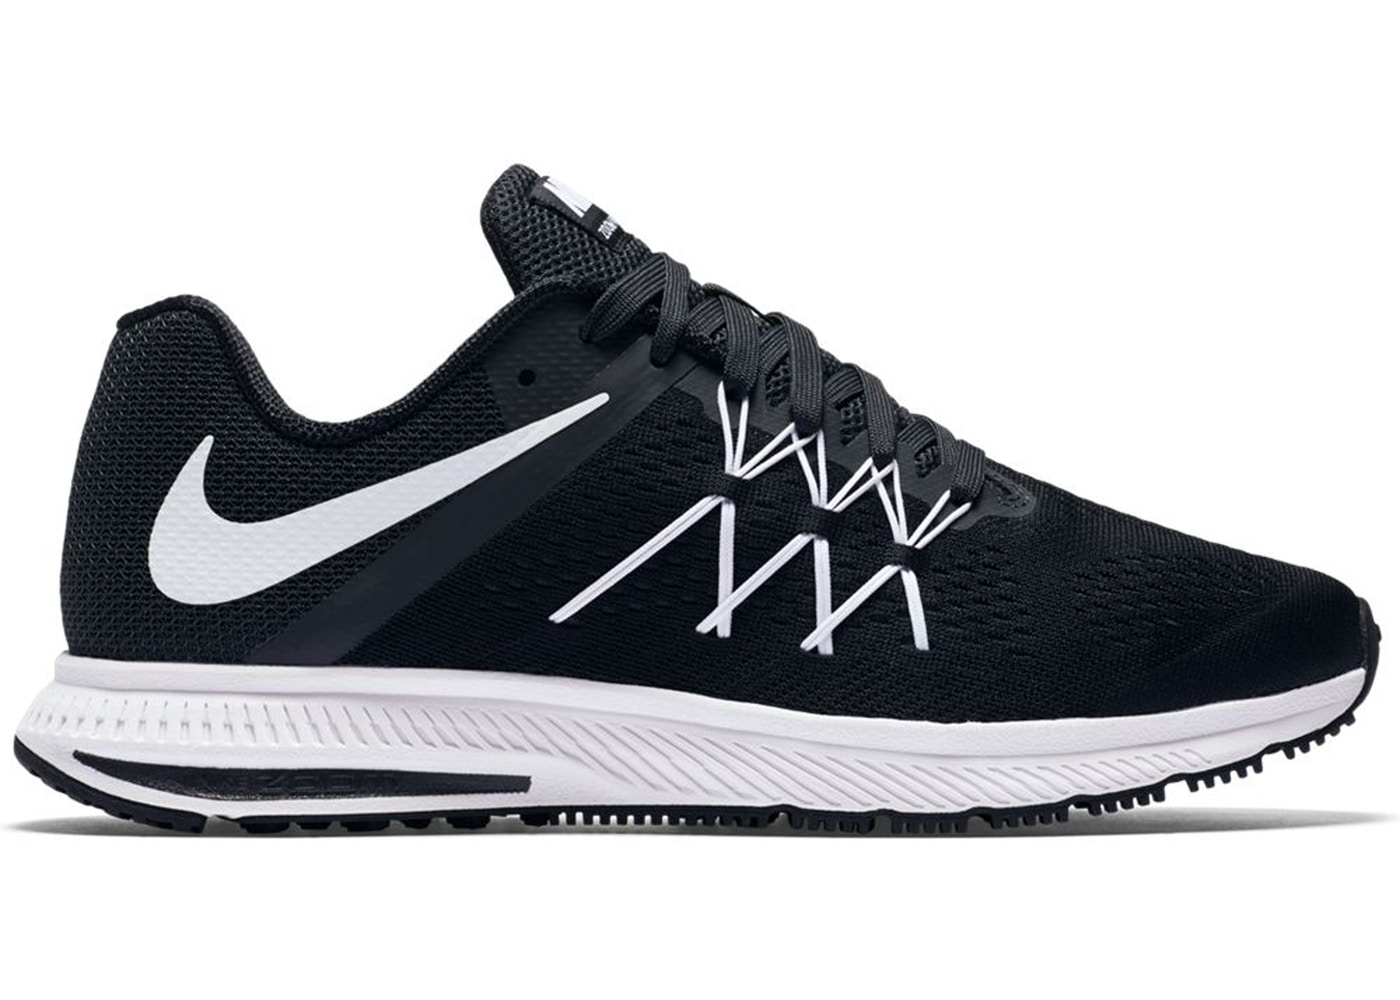 outlet store 6ff3c 2b794 Nike Zoom Winflo 3 Black White